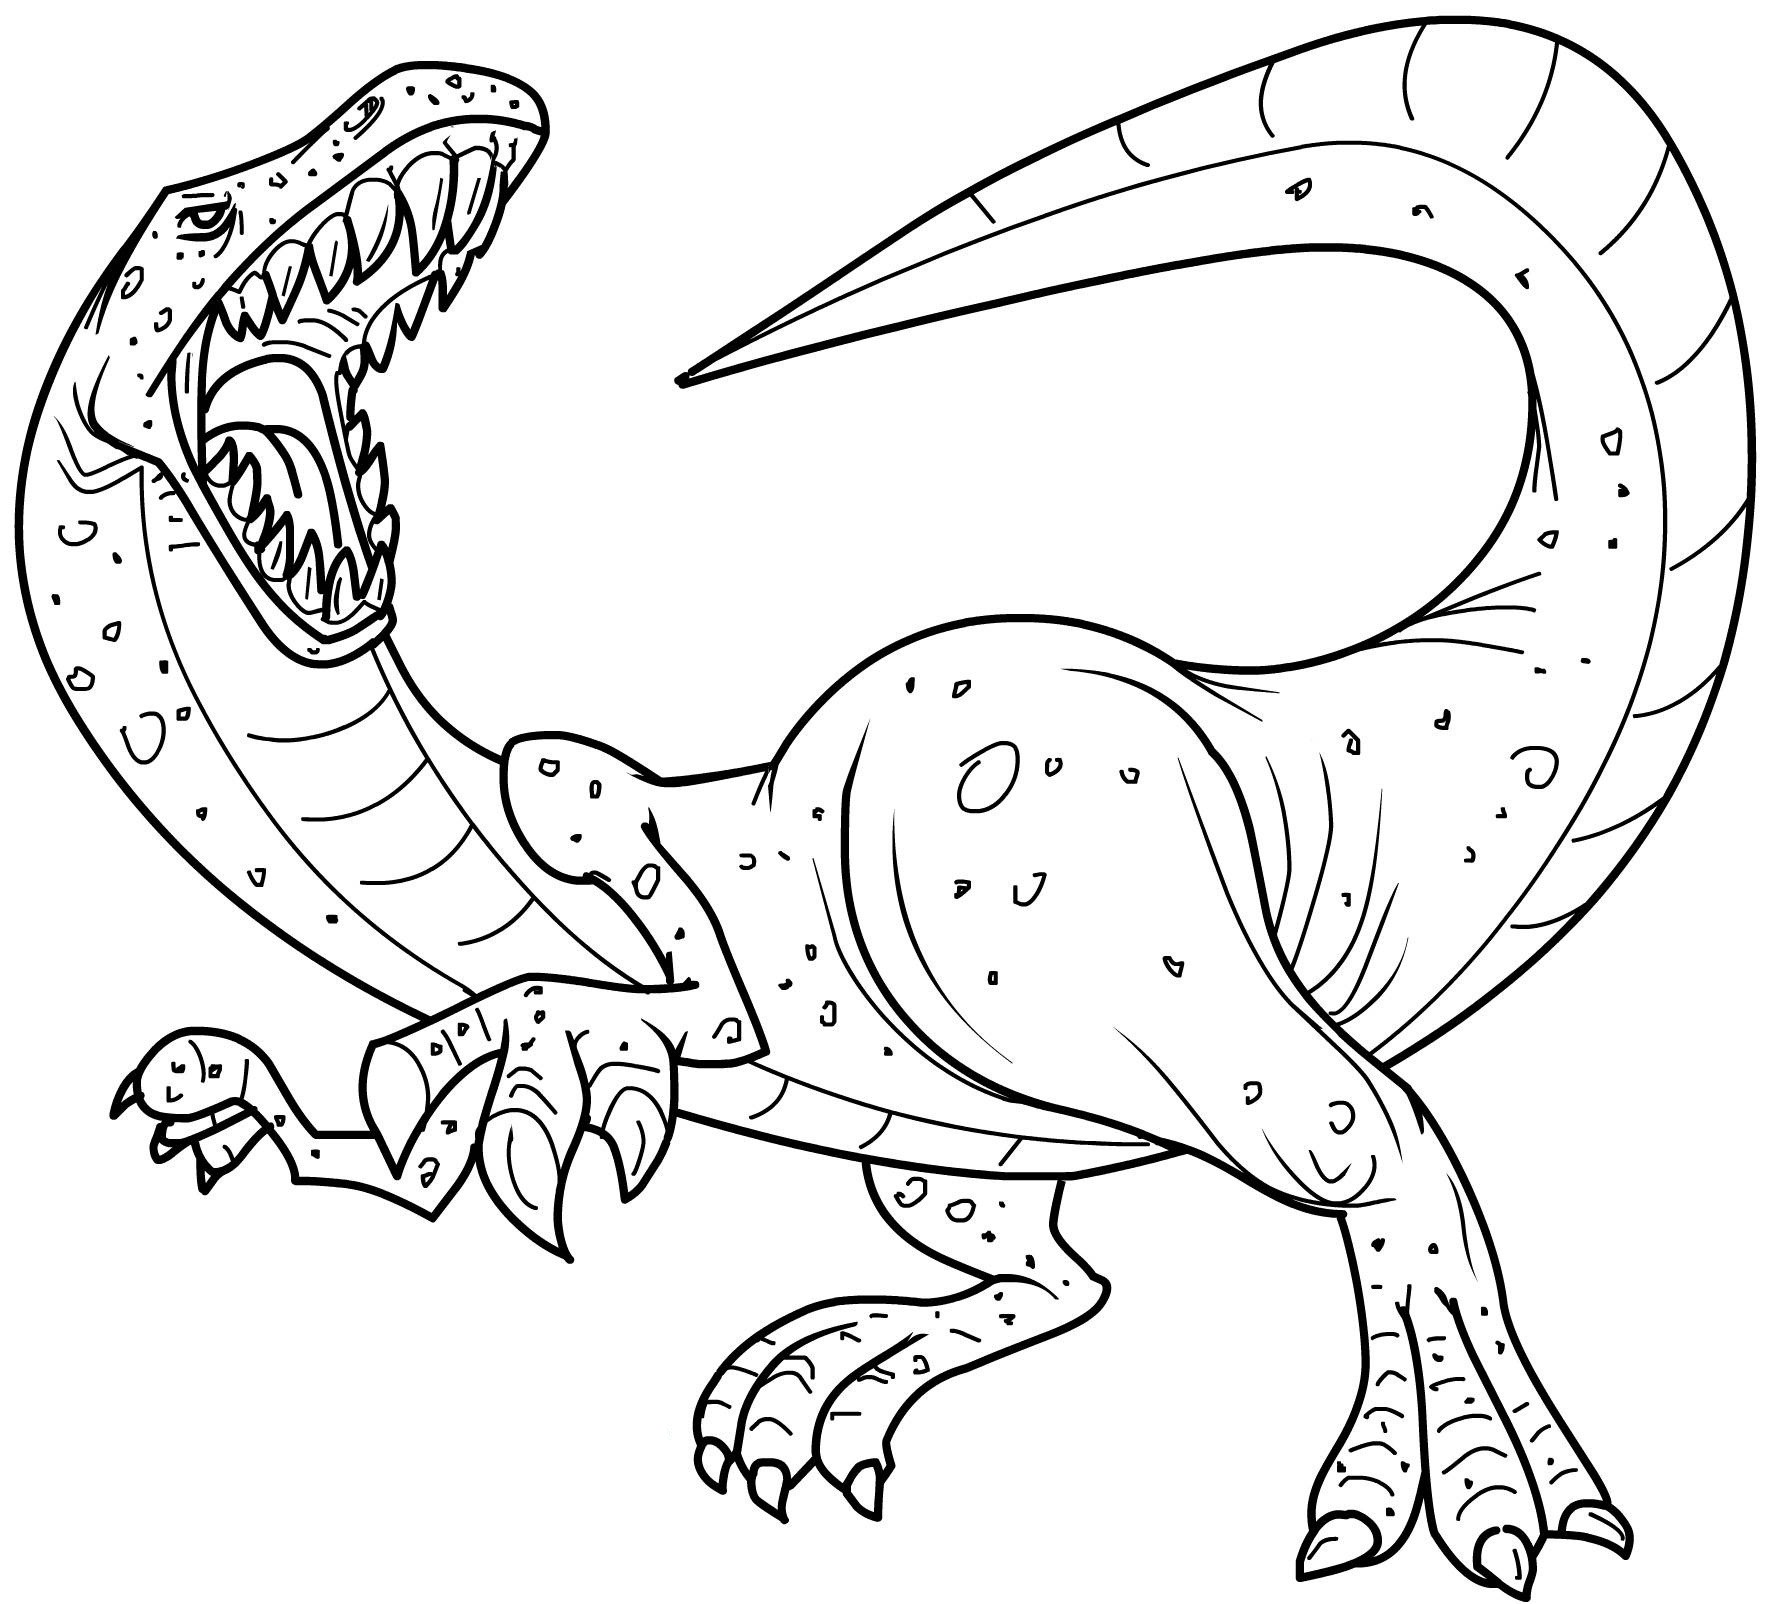 Dinosaur Coloring Pages Printable Free Timykids Dinosaur Coloring Pages